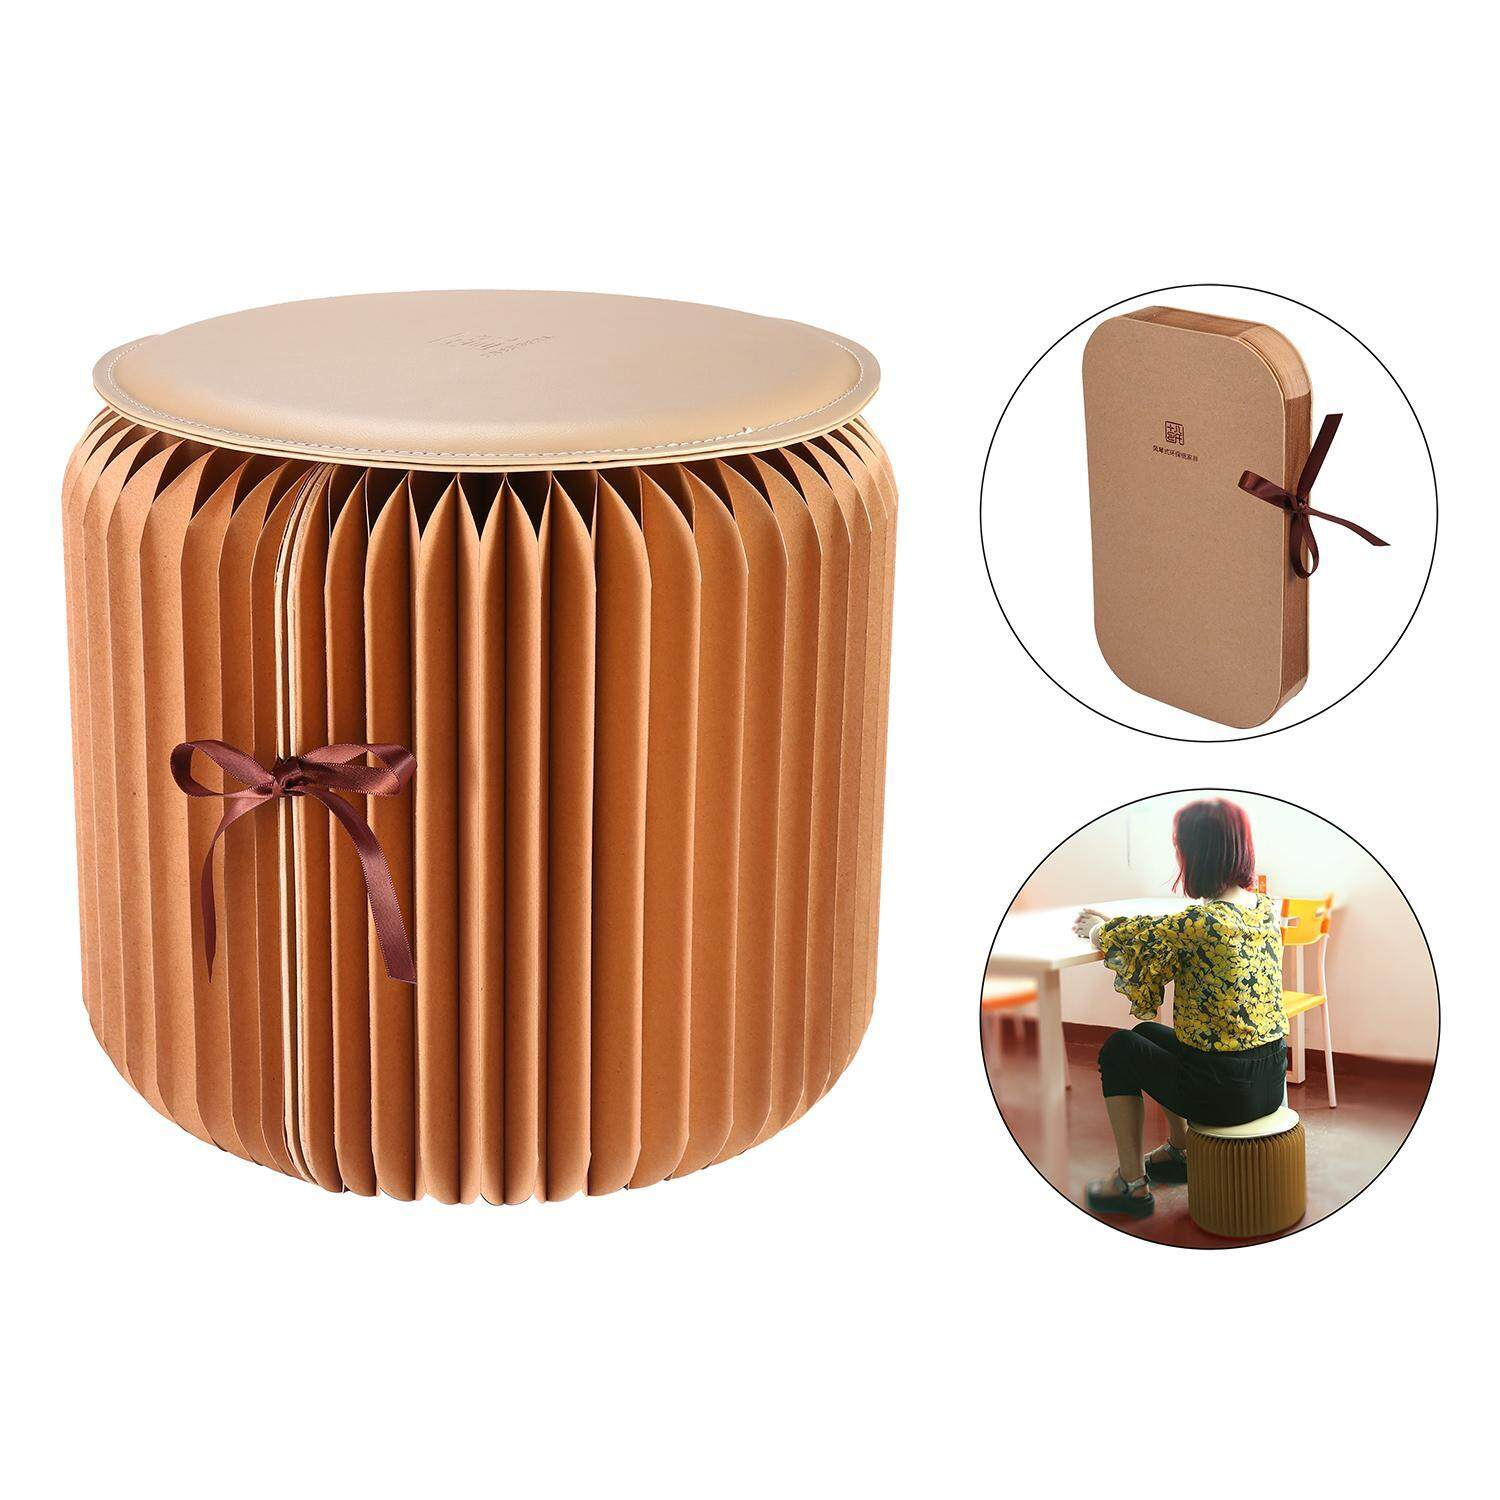 SOBUY Flexible Paper Stool,Portable Home Furniture Paper Design Folding Chair with 1pcs Leather Pad,Brown Small Size - intl